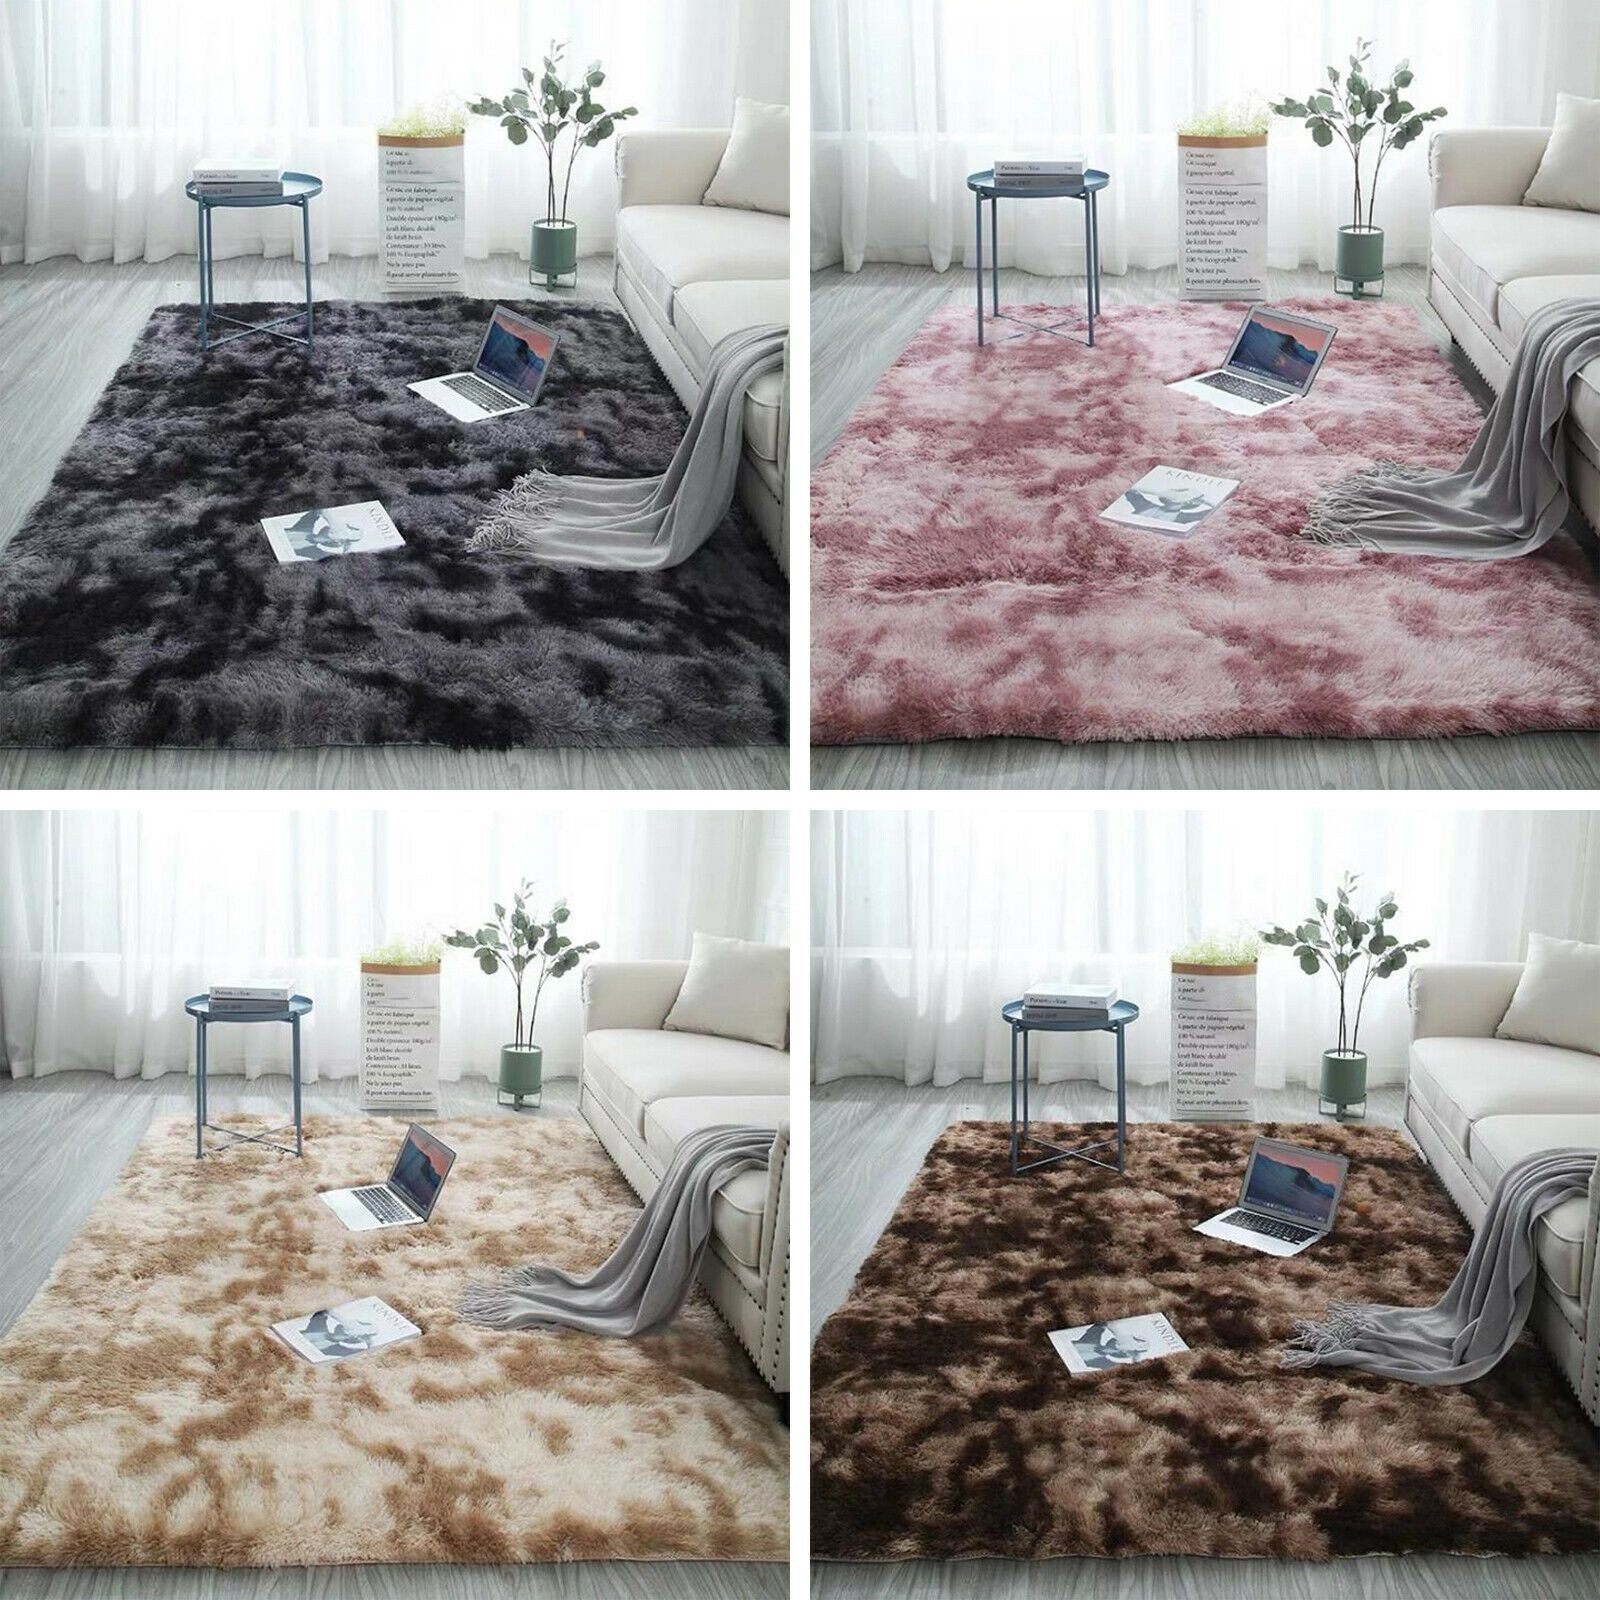 Fluffy Carpet for Bedroom Elegant Plush Floor Carpets soft Fluffy area Rug Mat Shaggy